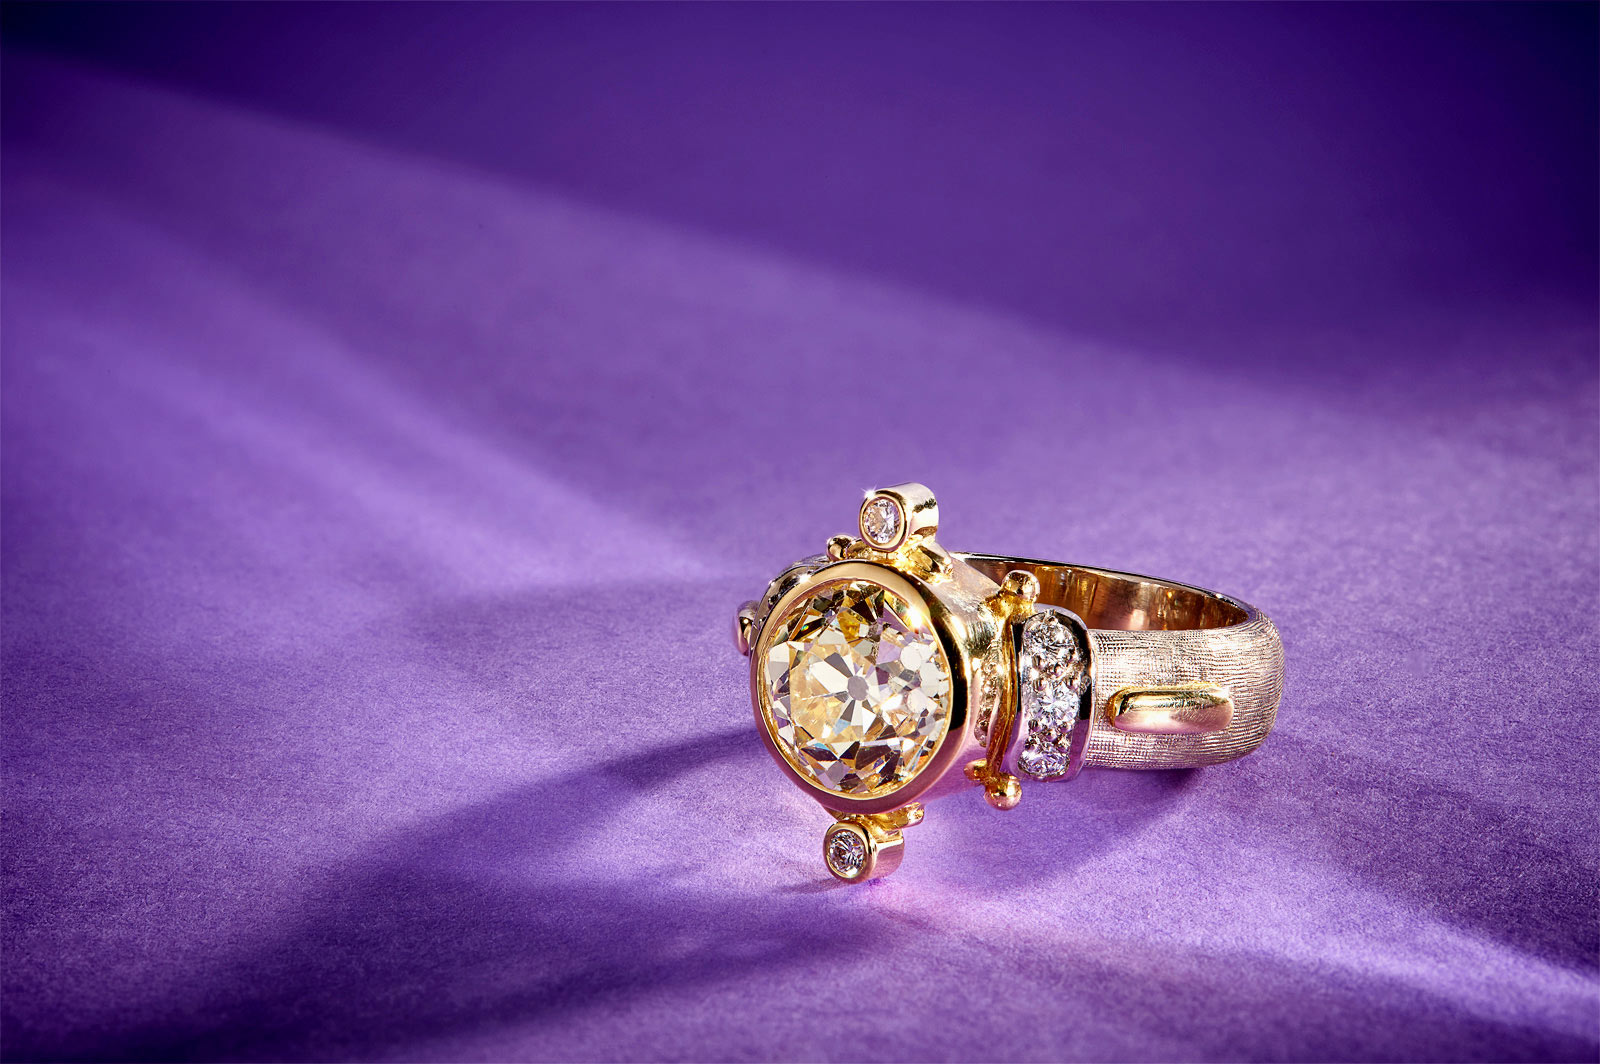 Jewelry  photography - gold ring with large stone on purple background